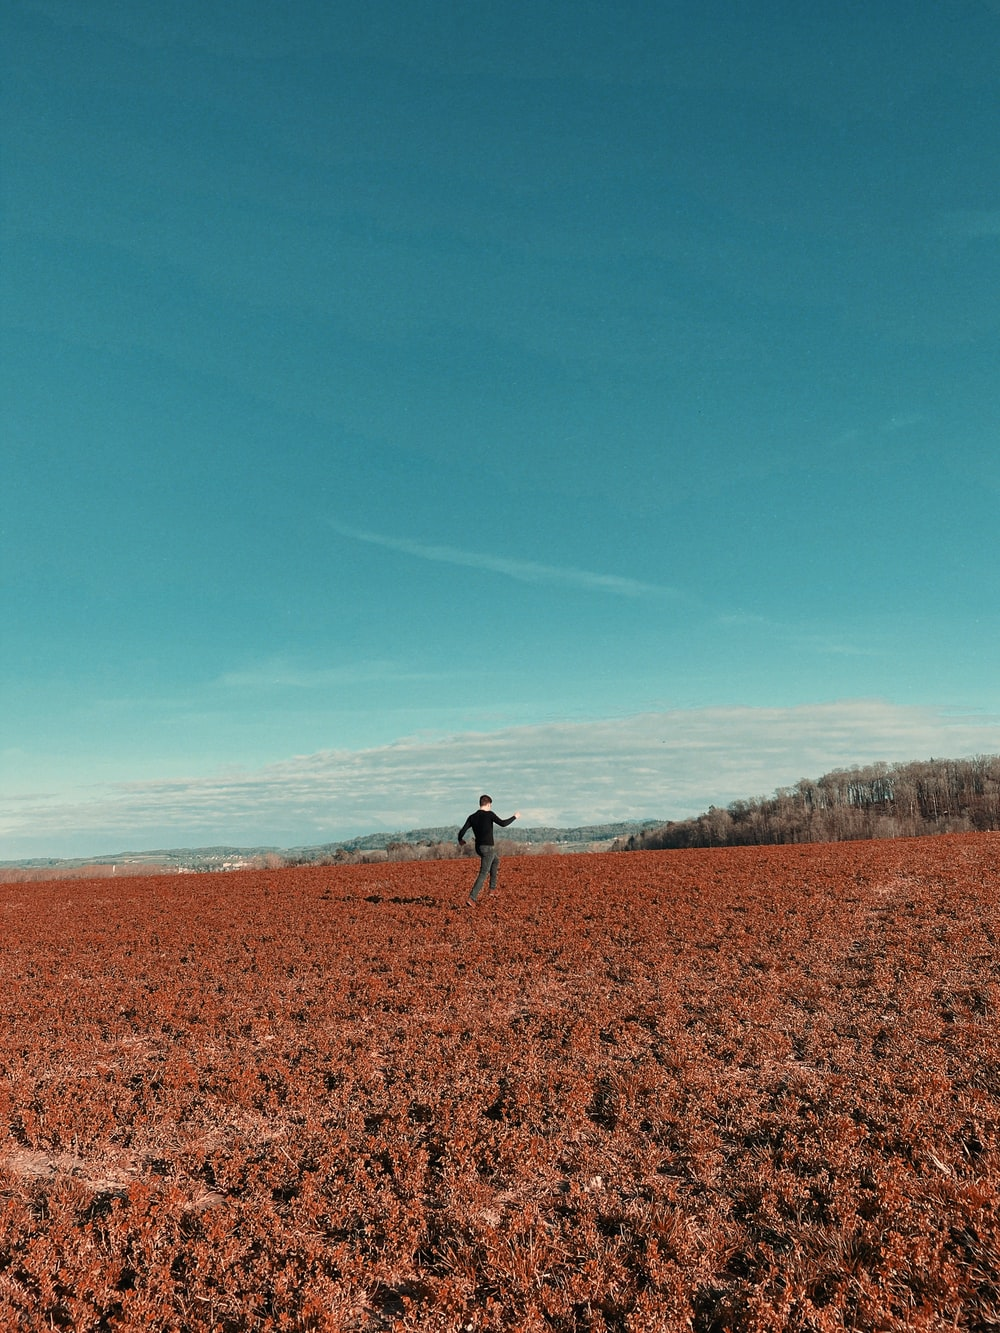 person walking on brown field during daytime